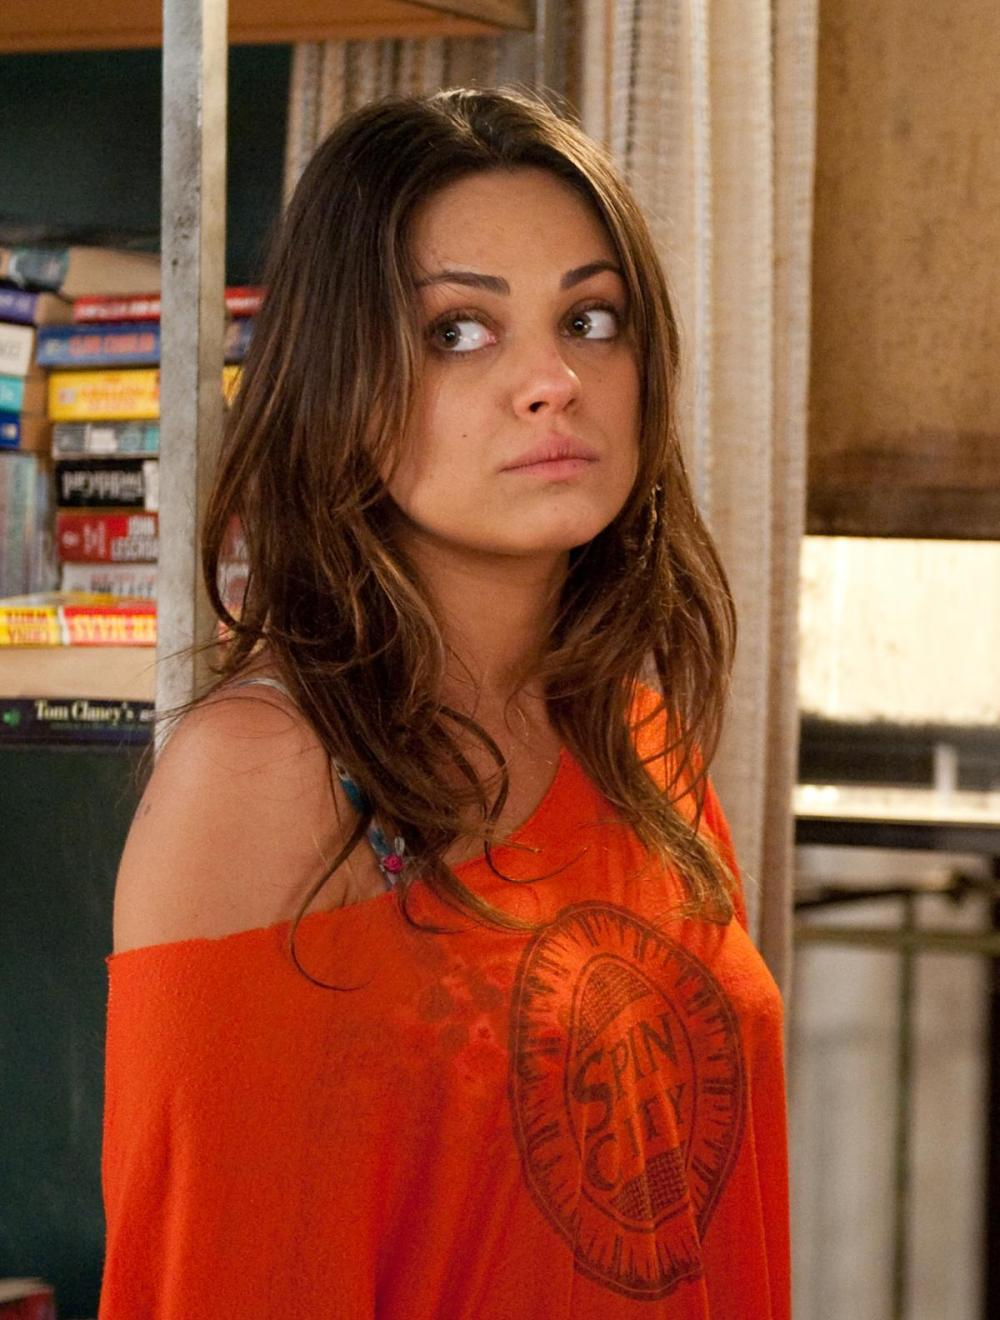 mila kunis filme. Black Bedroom Furniture Sets. Home Design Ideas